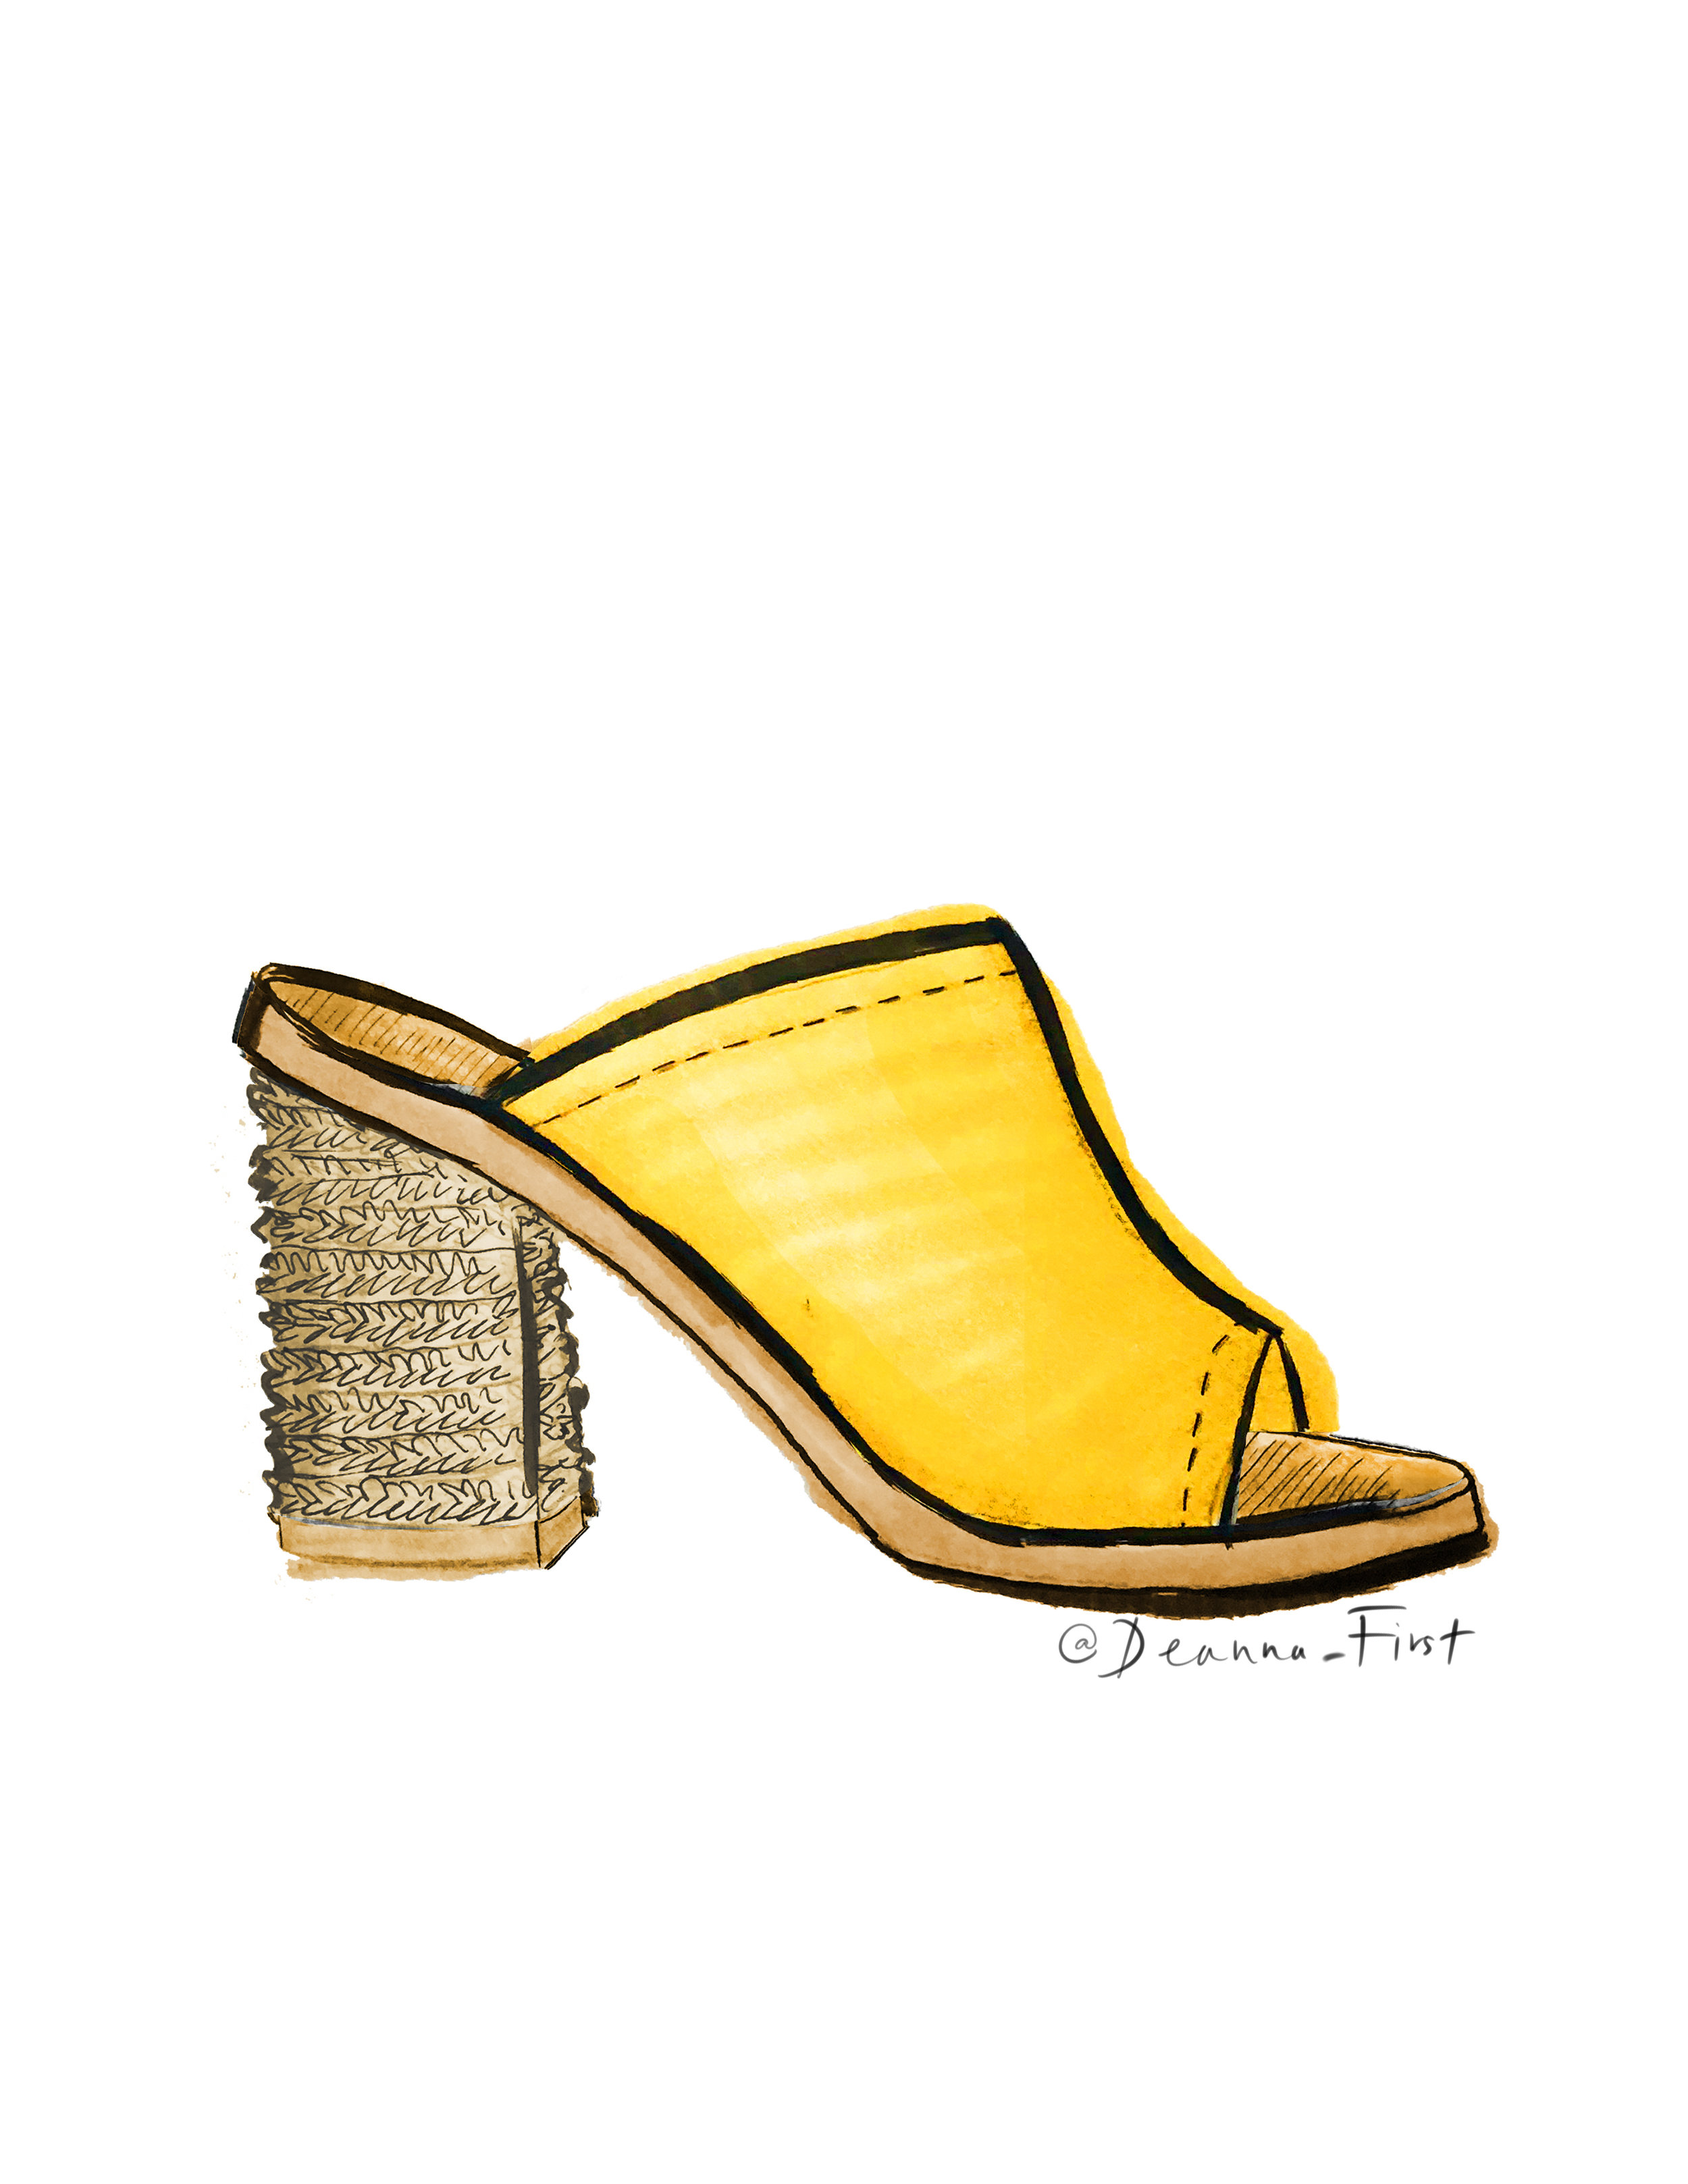 DSW yellow heel-Final-deannafirst.jpg